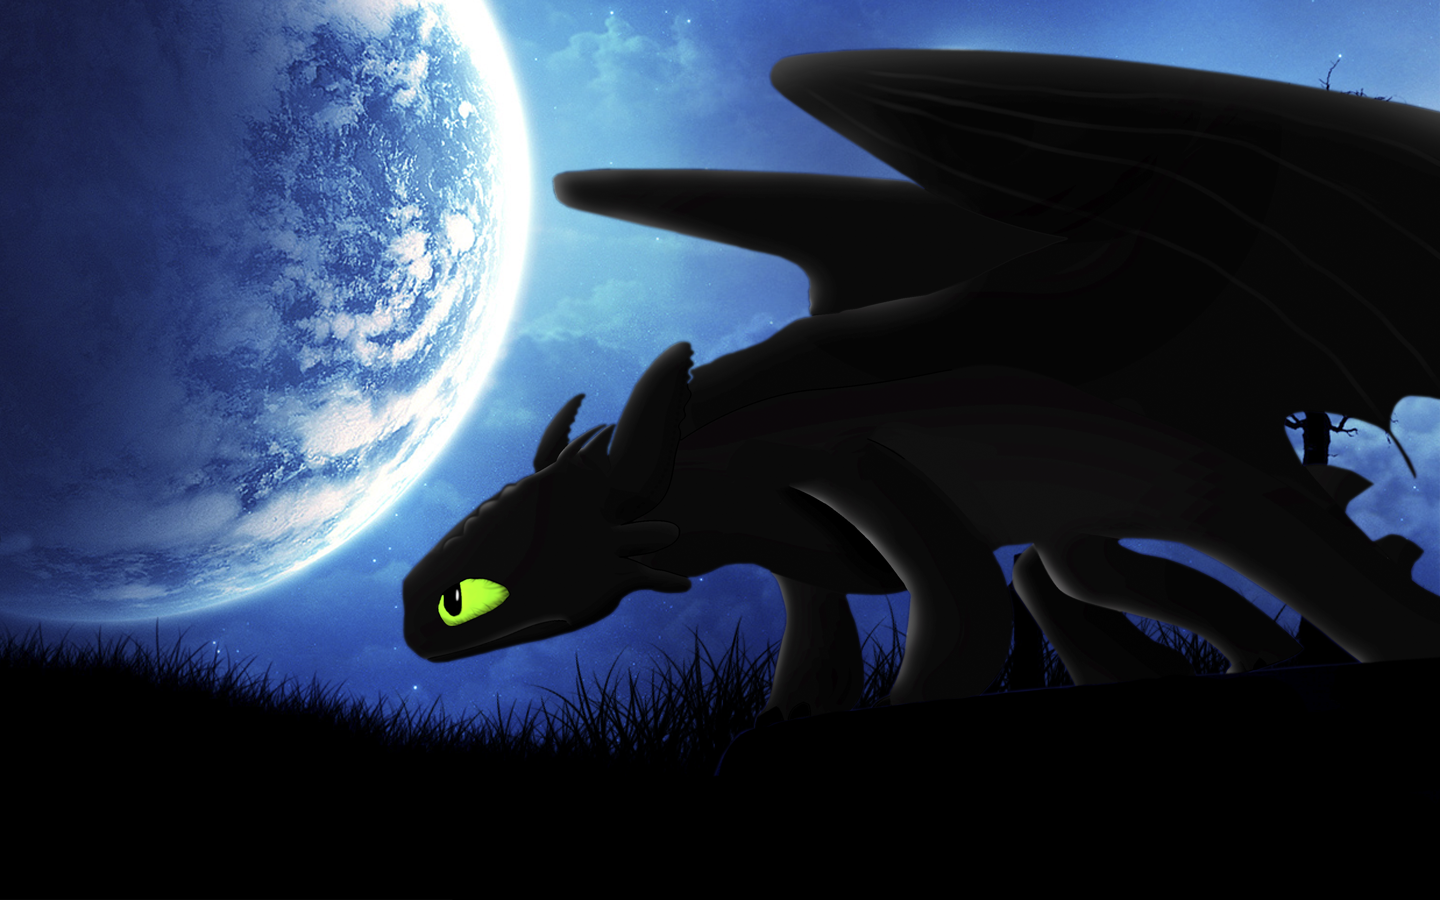 Request Night Fury Toothless Wallpaper by BlueDragonHans on 1440x900